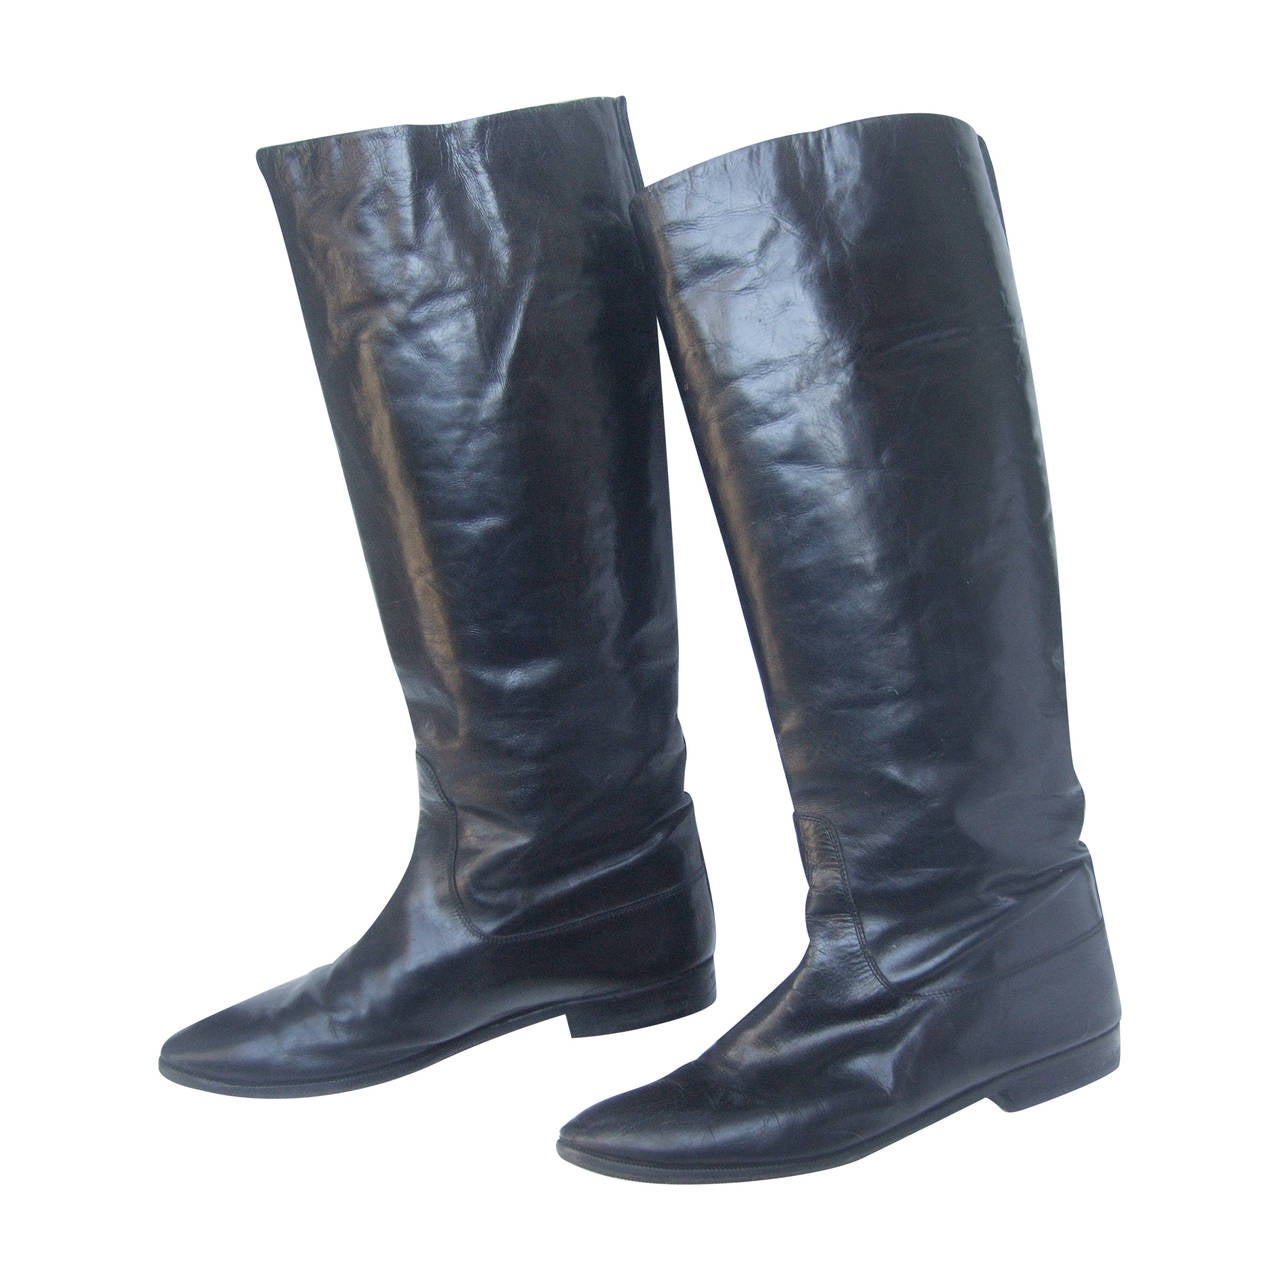 Gucci Black Leather Vintage Riding Boots c 1980s Size 38.5 1